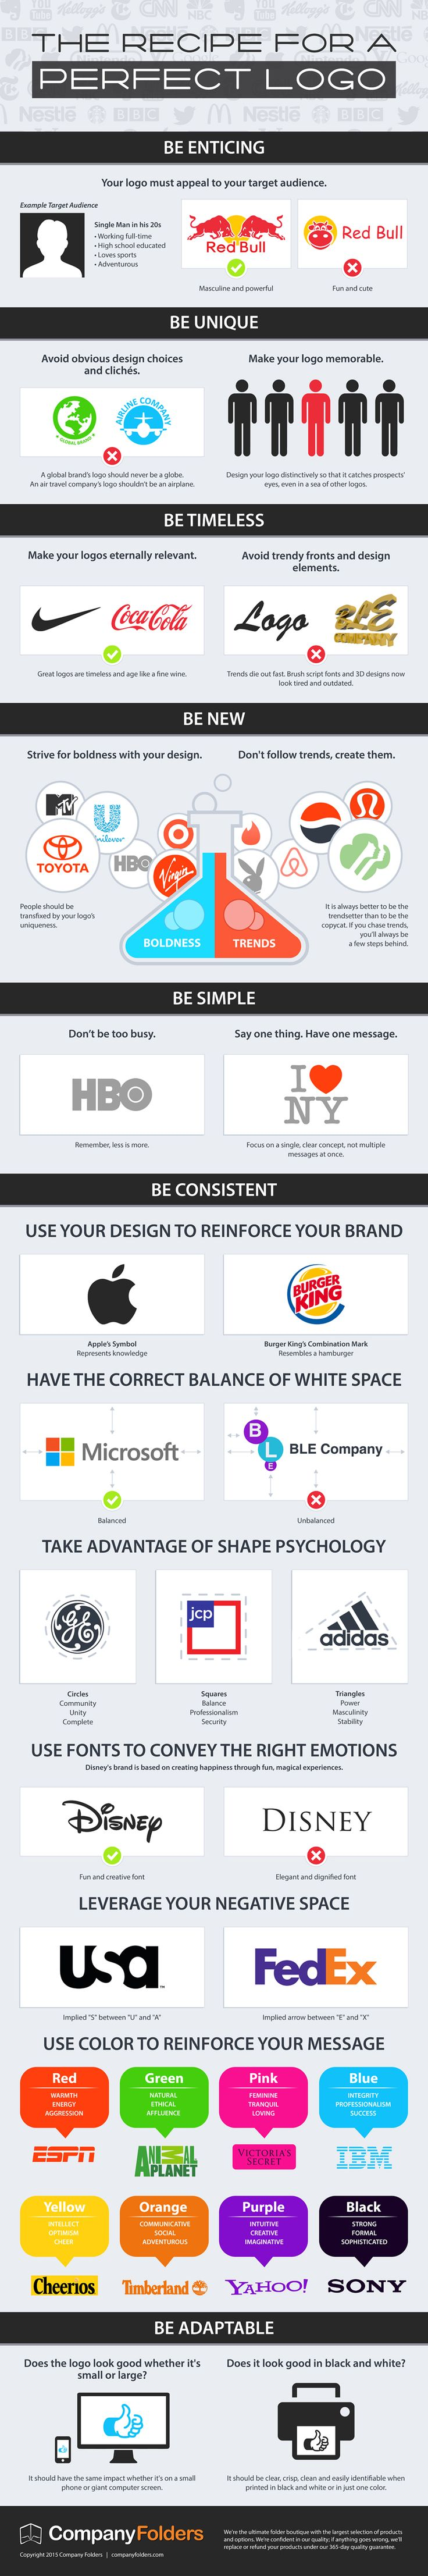 The Recipe For A Perfect Business Logo (Infographic) - How To Design #logo #marketing #startup